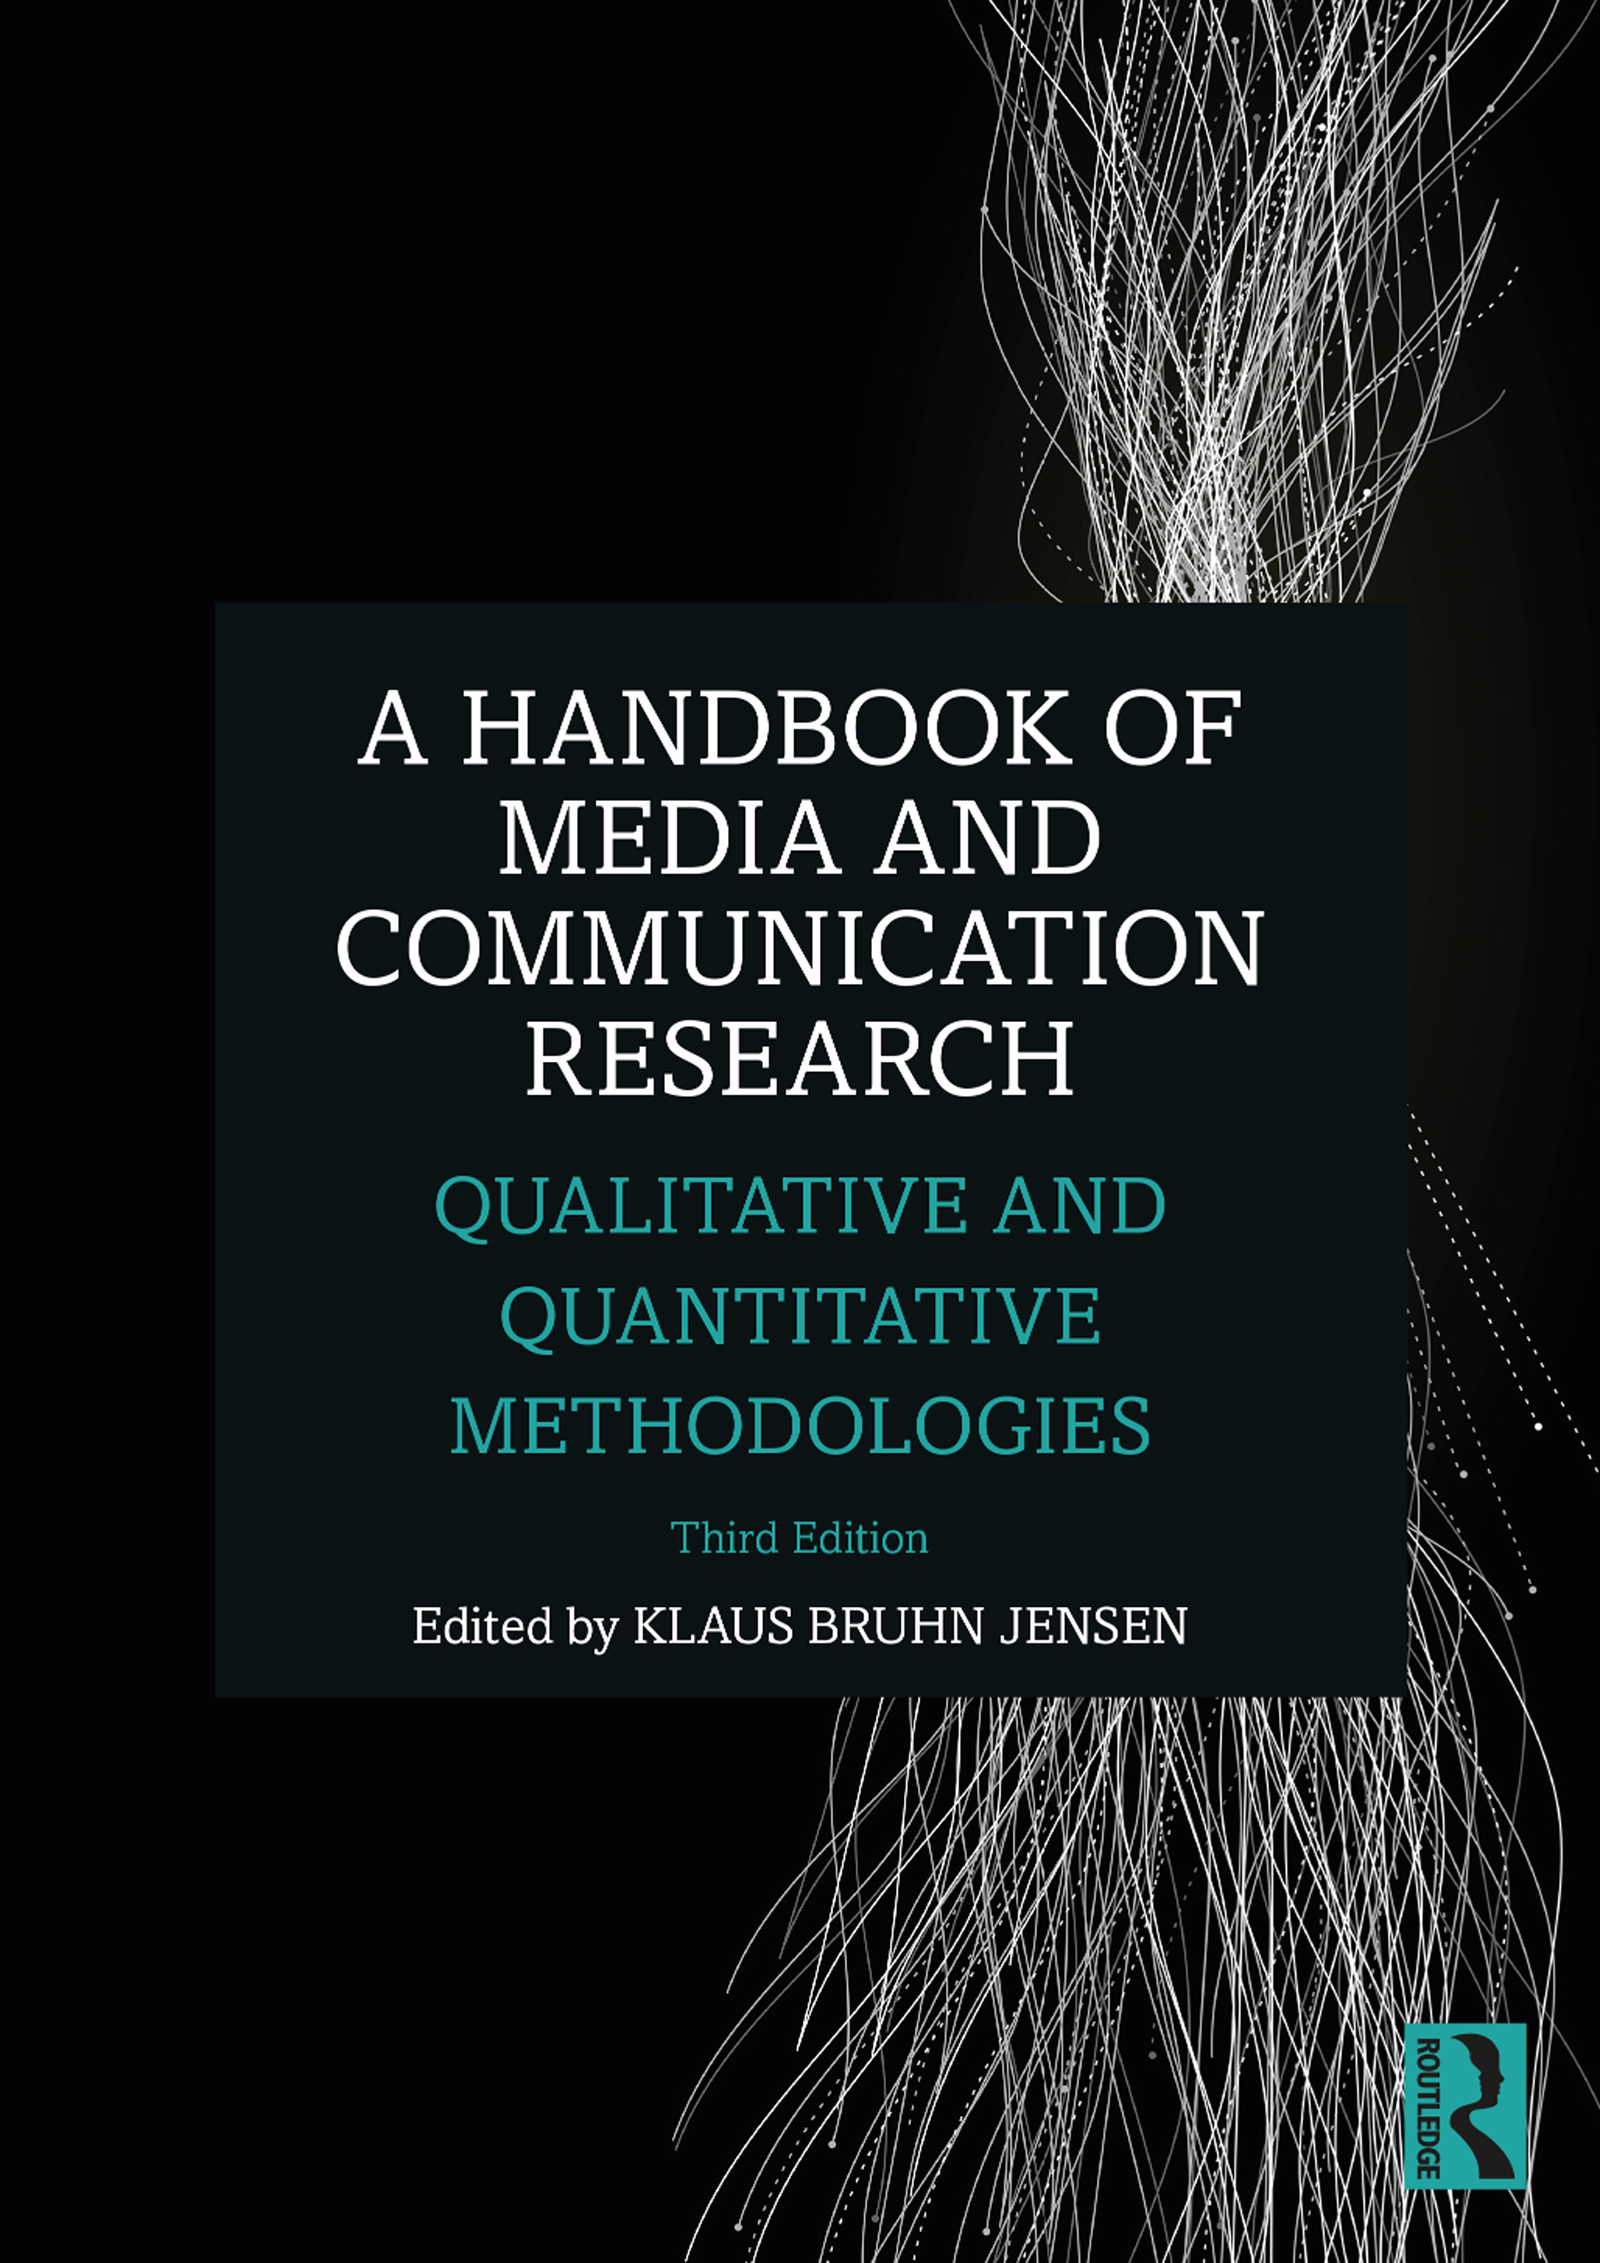 The complementarity of qualitative and quantitative methodologies in media and communication research